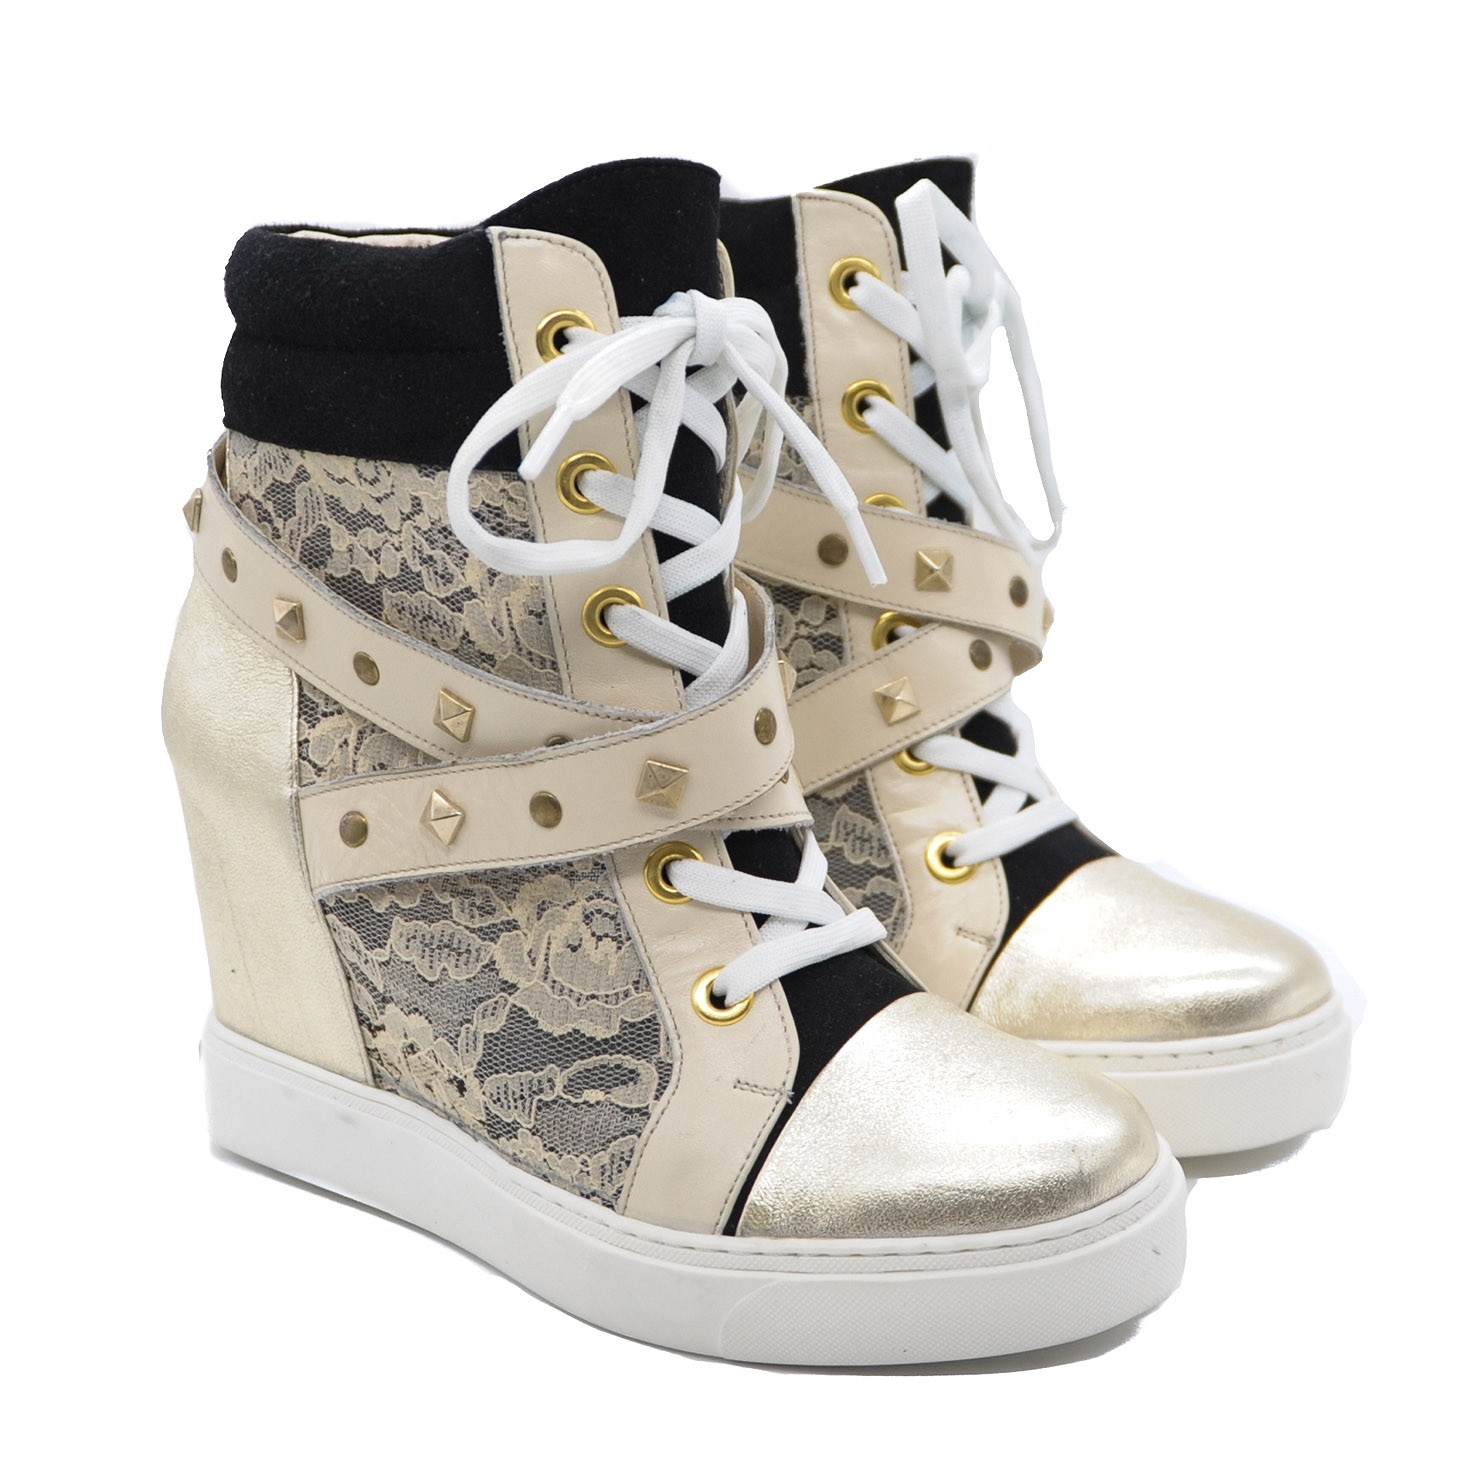 Ankle High Decorative Shoes with Hidden Wedge and Front Lace Ties and Side Zip